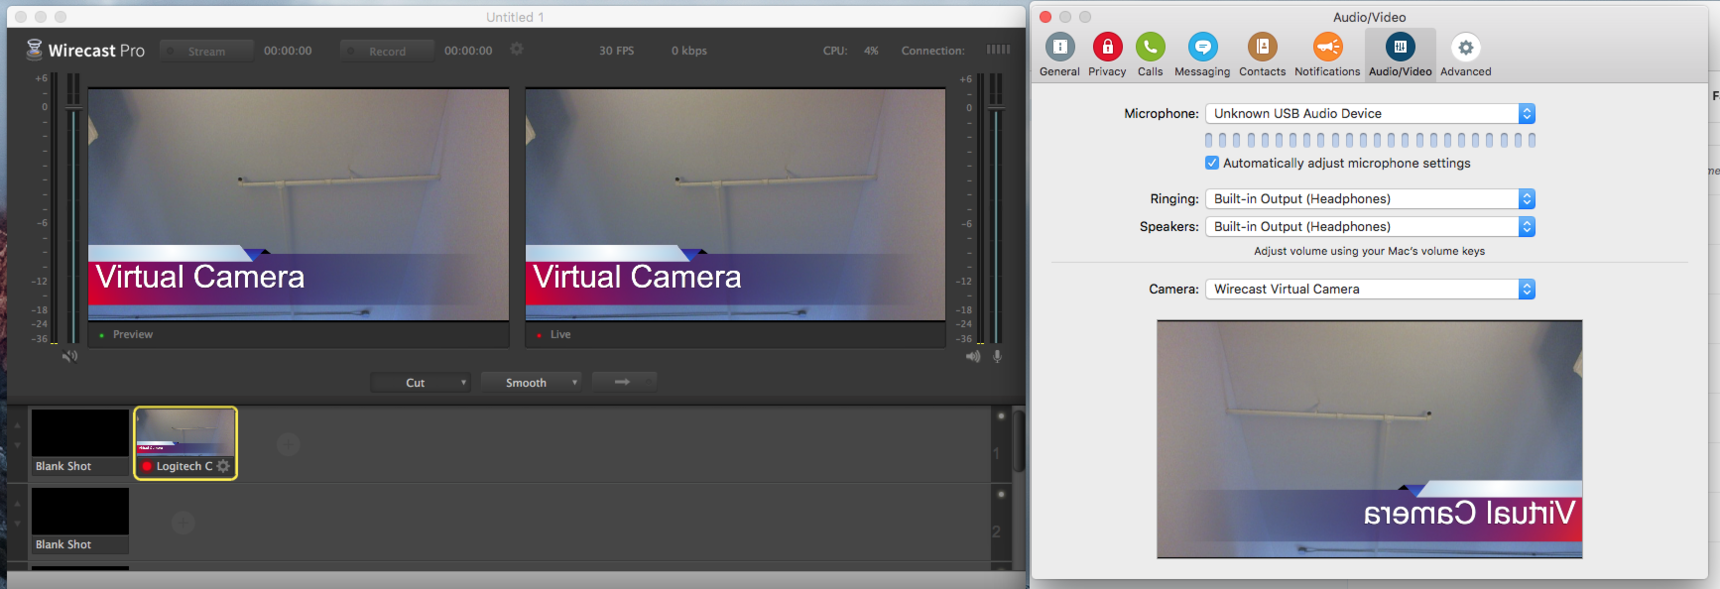 Wirecast Virtual Camera not working - Wirecast Everything